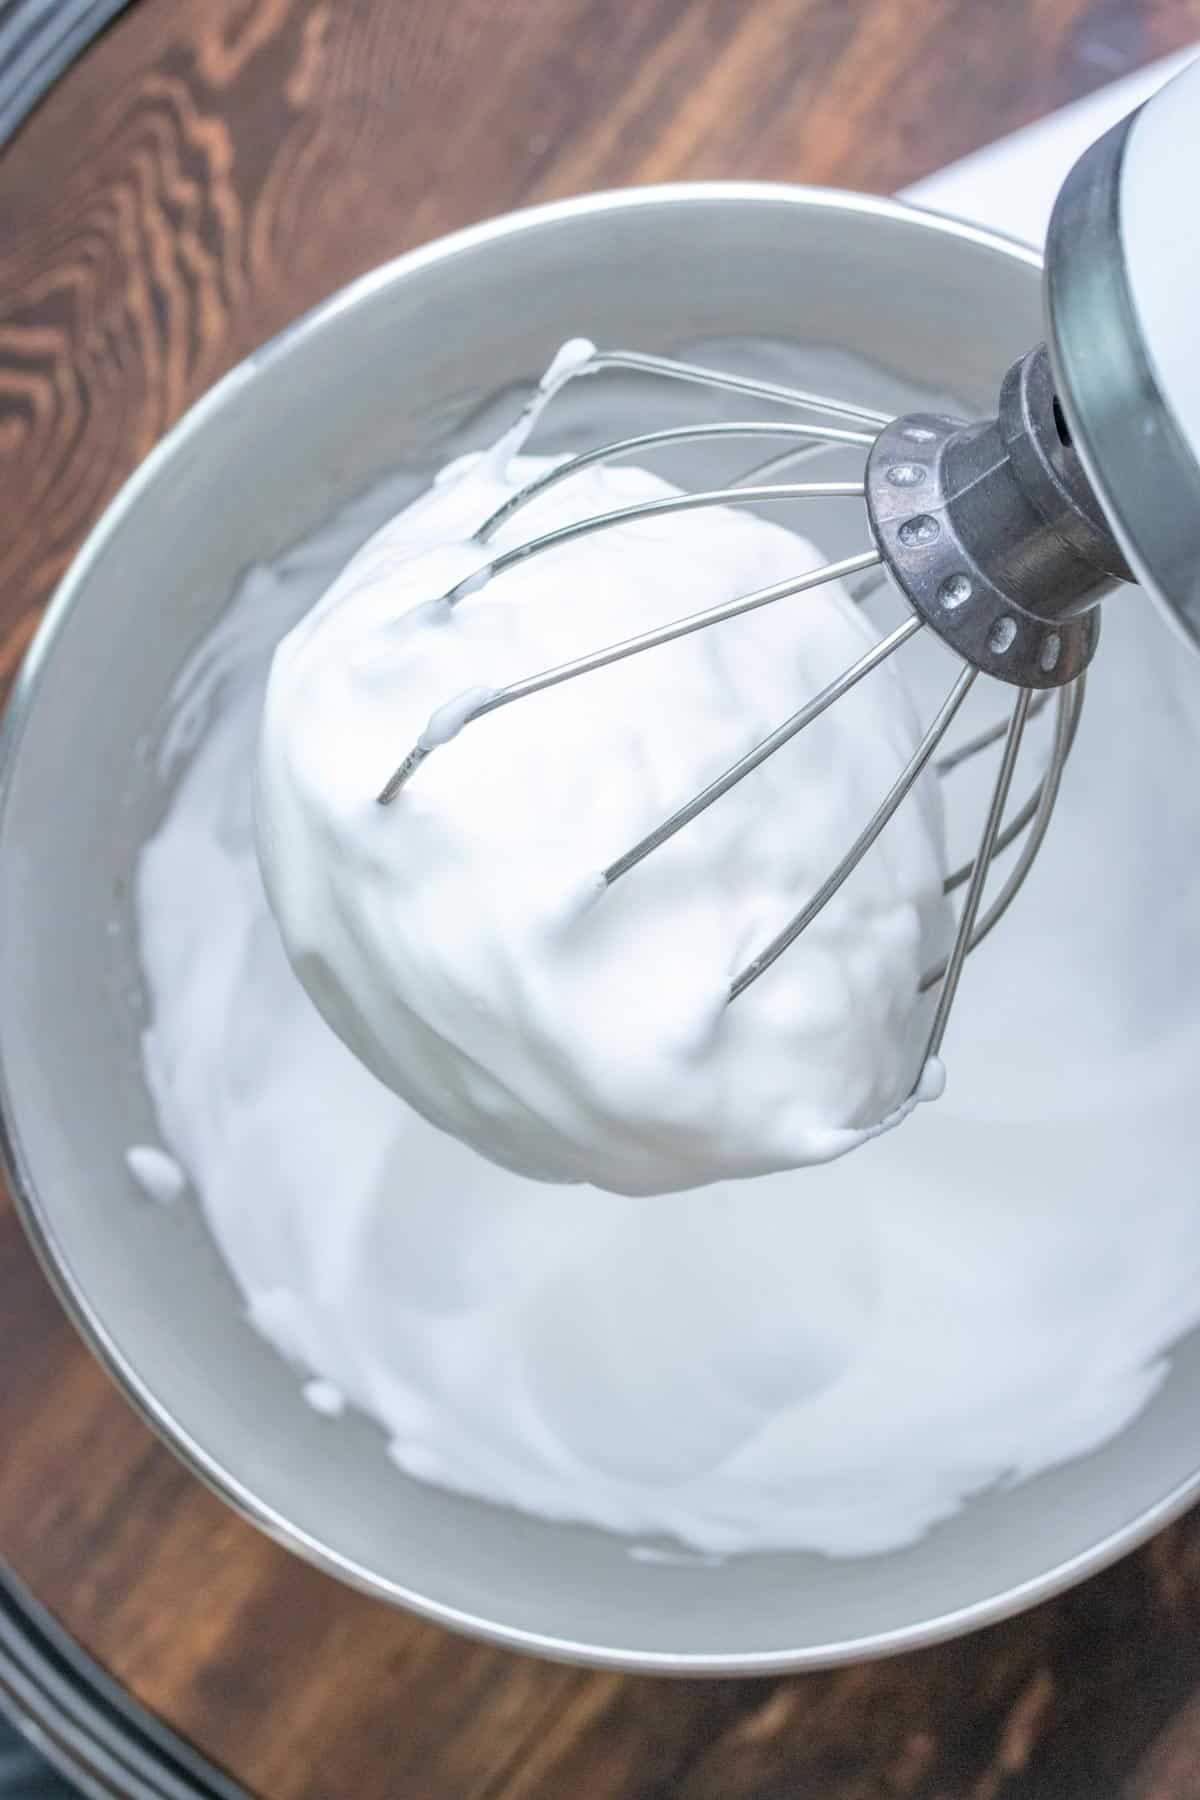 Stand mixer whipping up creamy frothy topping